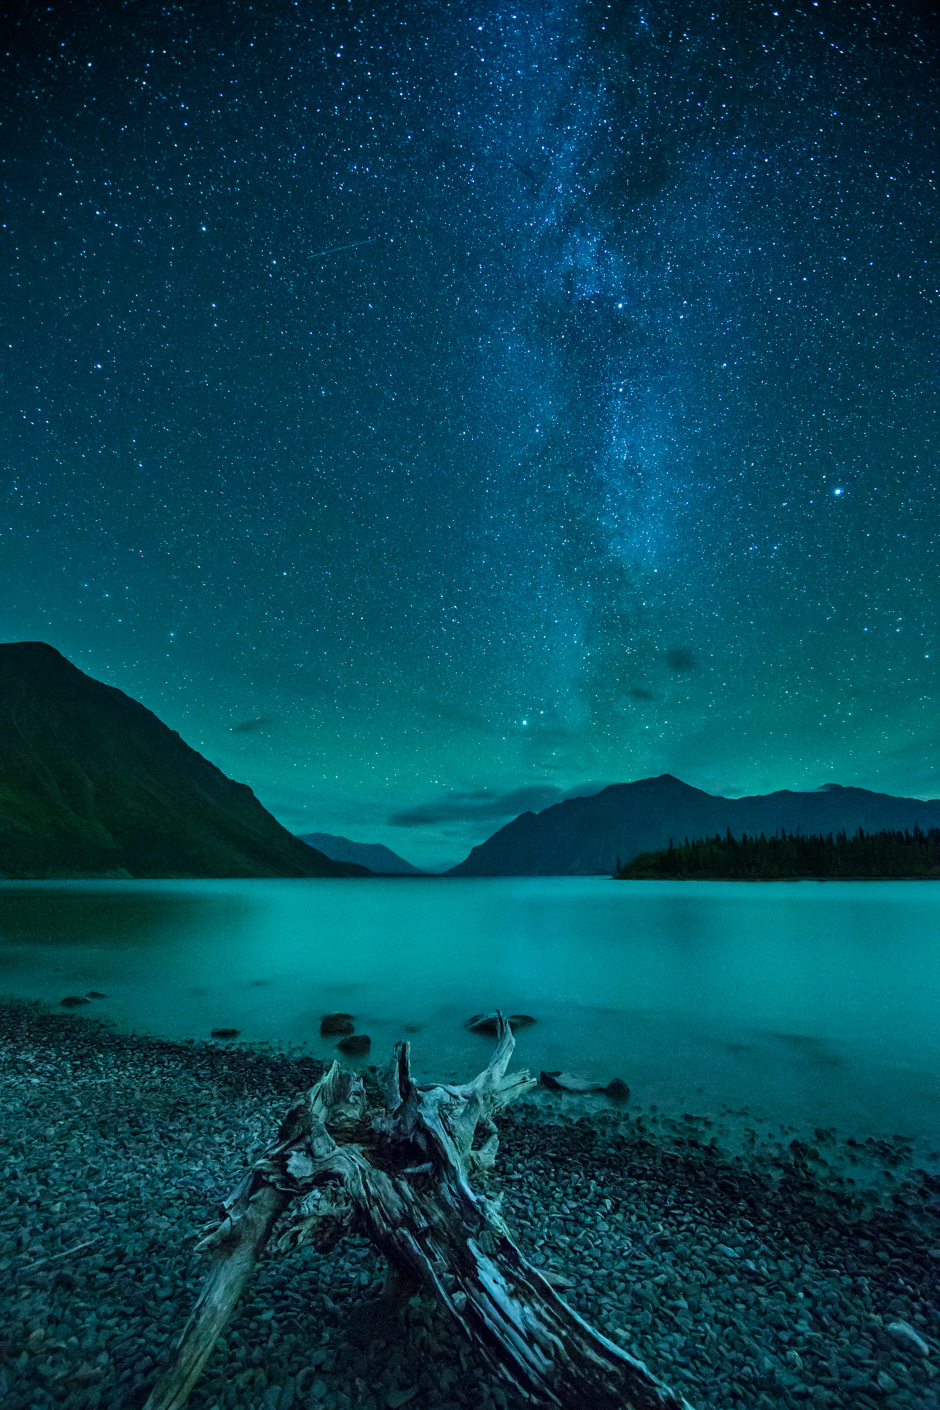 The Milky Way and night sky over Kathleen Lake and the St Elias Mountains, Kluane National Park, Yukon Territories, Canada